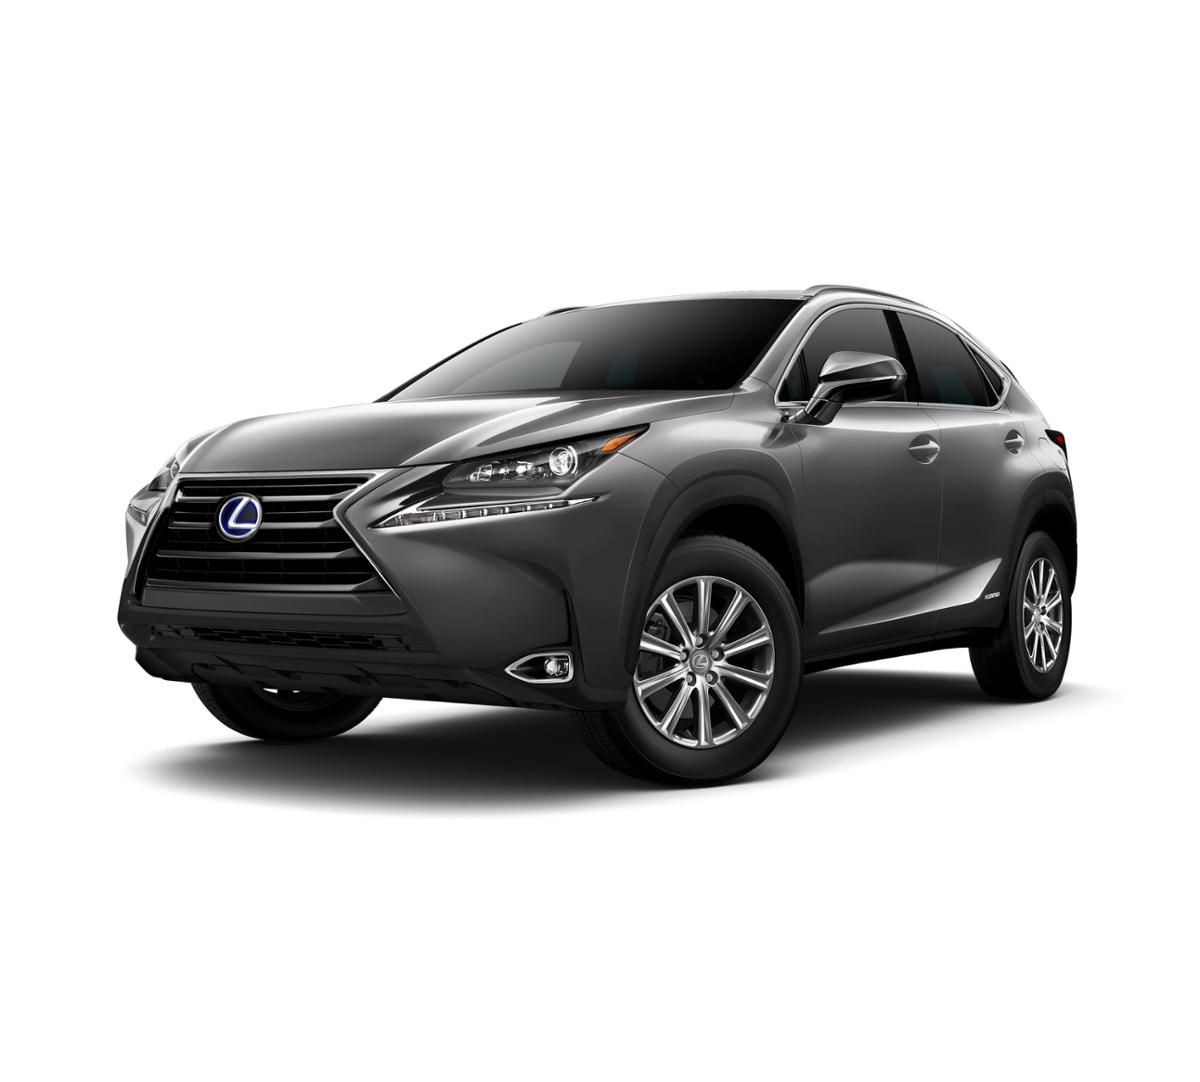 2017 Lexus NX 300h Vehicle Photo in Santa Barbara, CA 93105